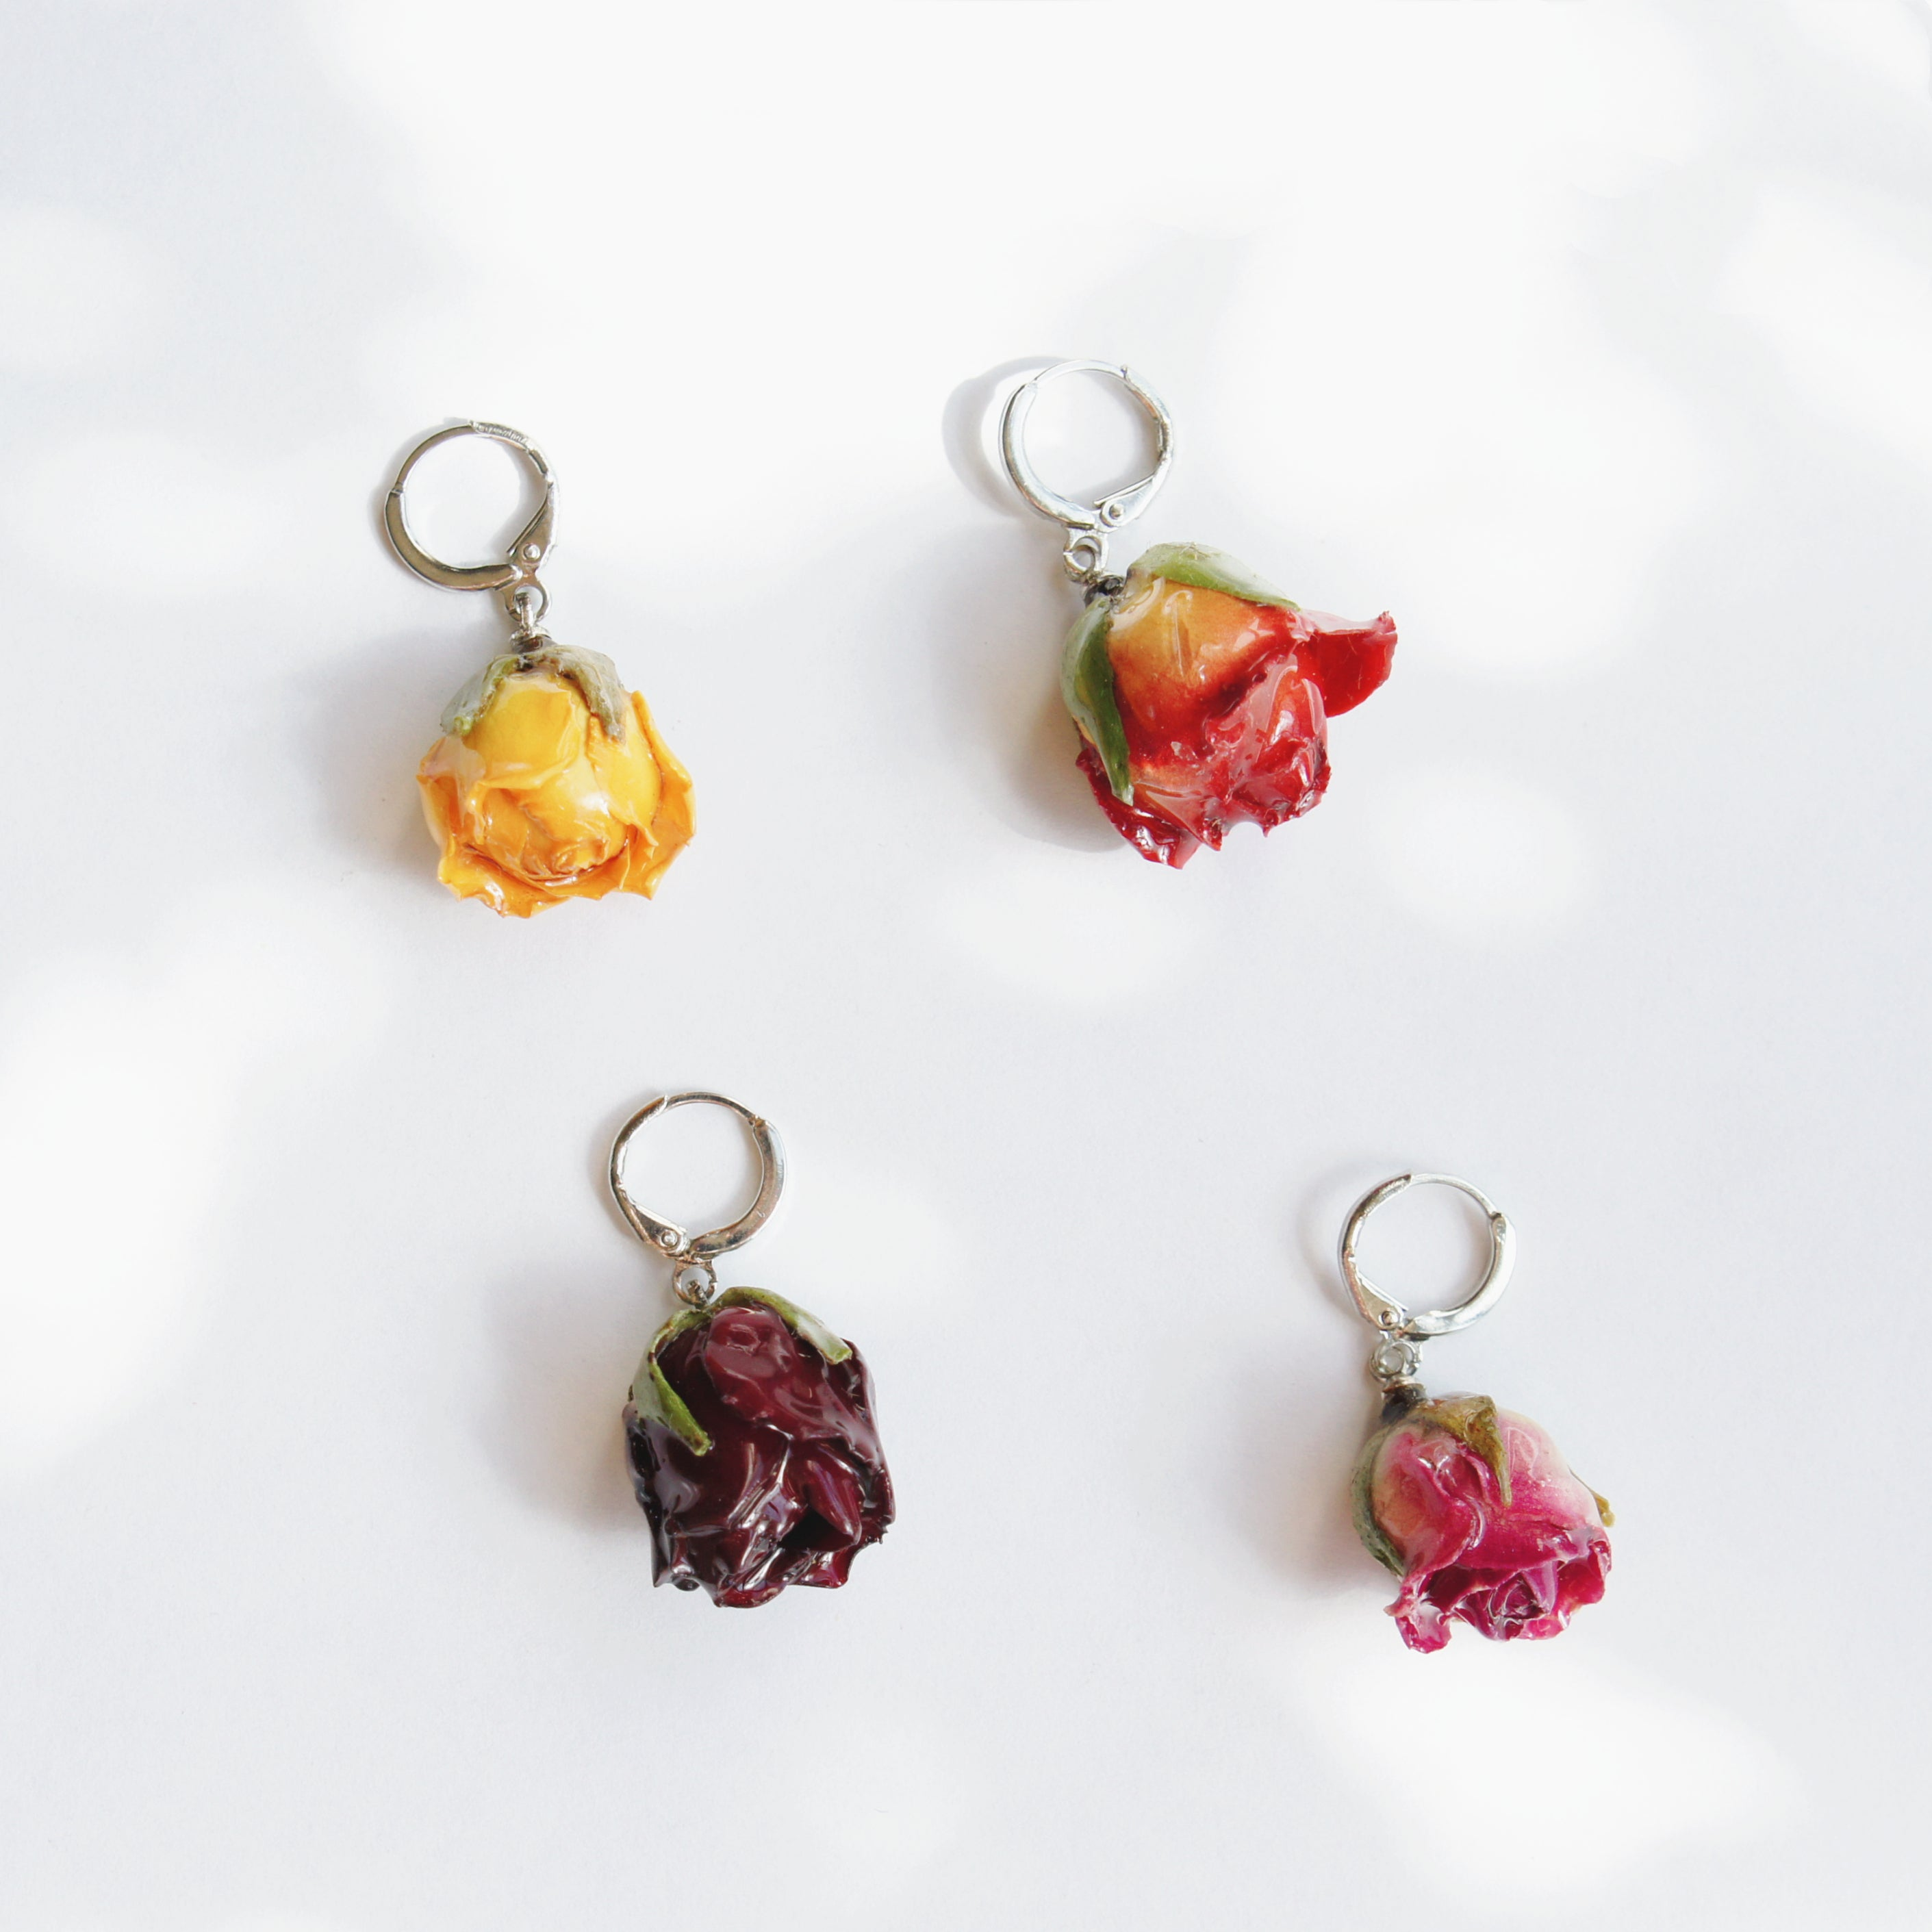 *REAL FLOWER* Garden Rosebud Single Huggie Hoop Earring